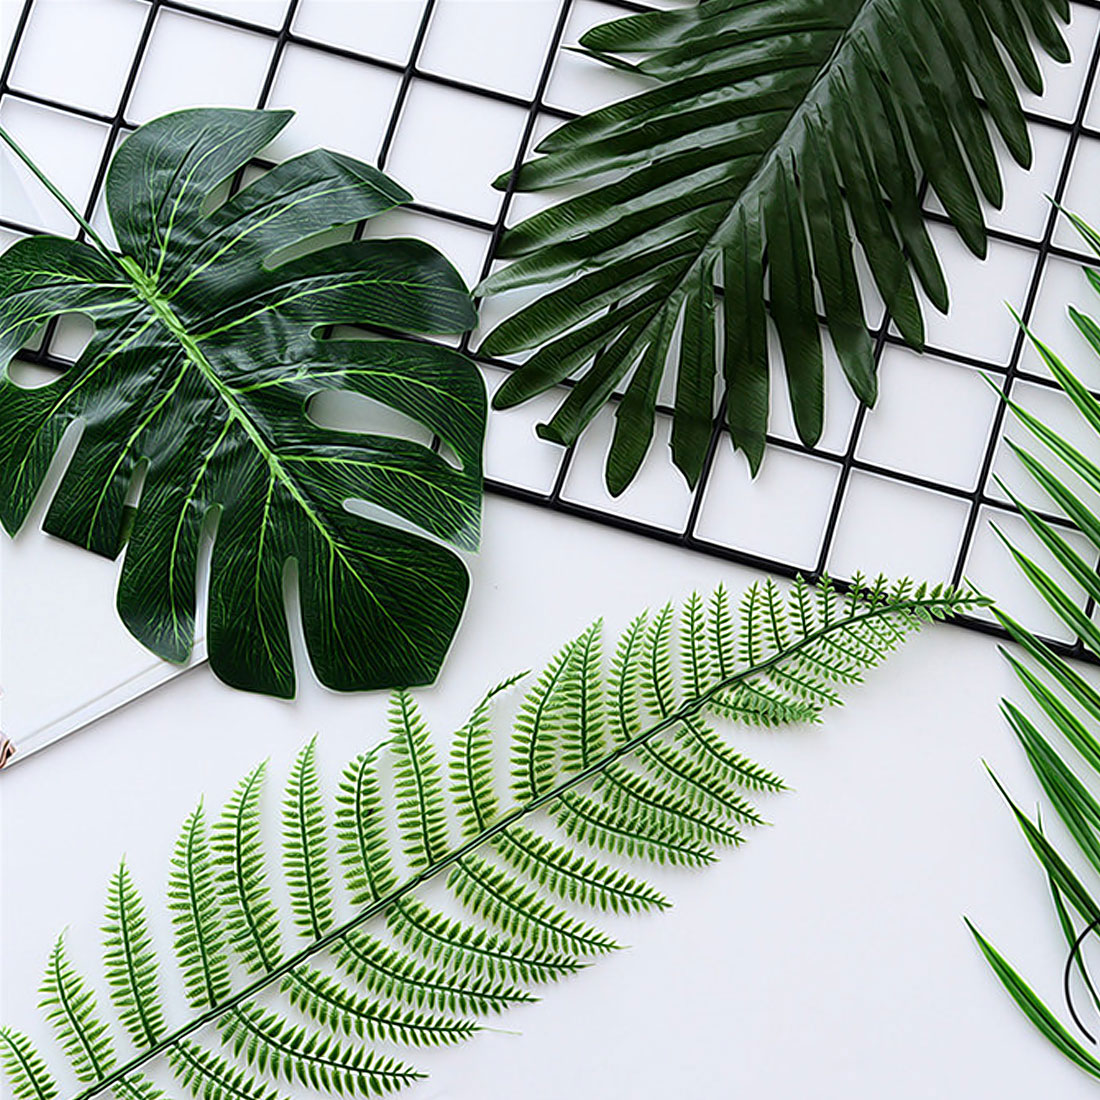 5 10 pcs Large Artificial Fake Monstera Palm Tree Leaves Green Plastic Leaf Wedding DIY Decoration Cheap Flowers Leaves Plant